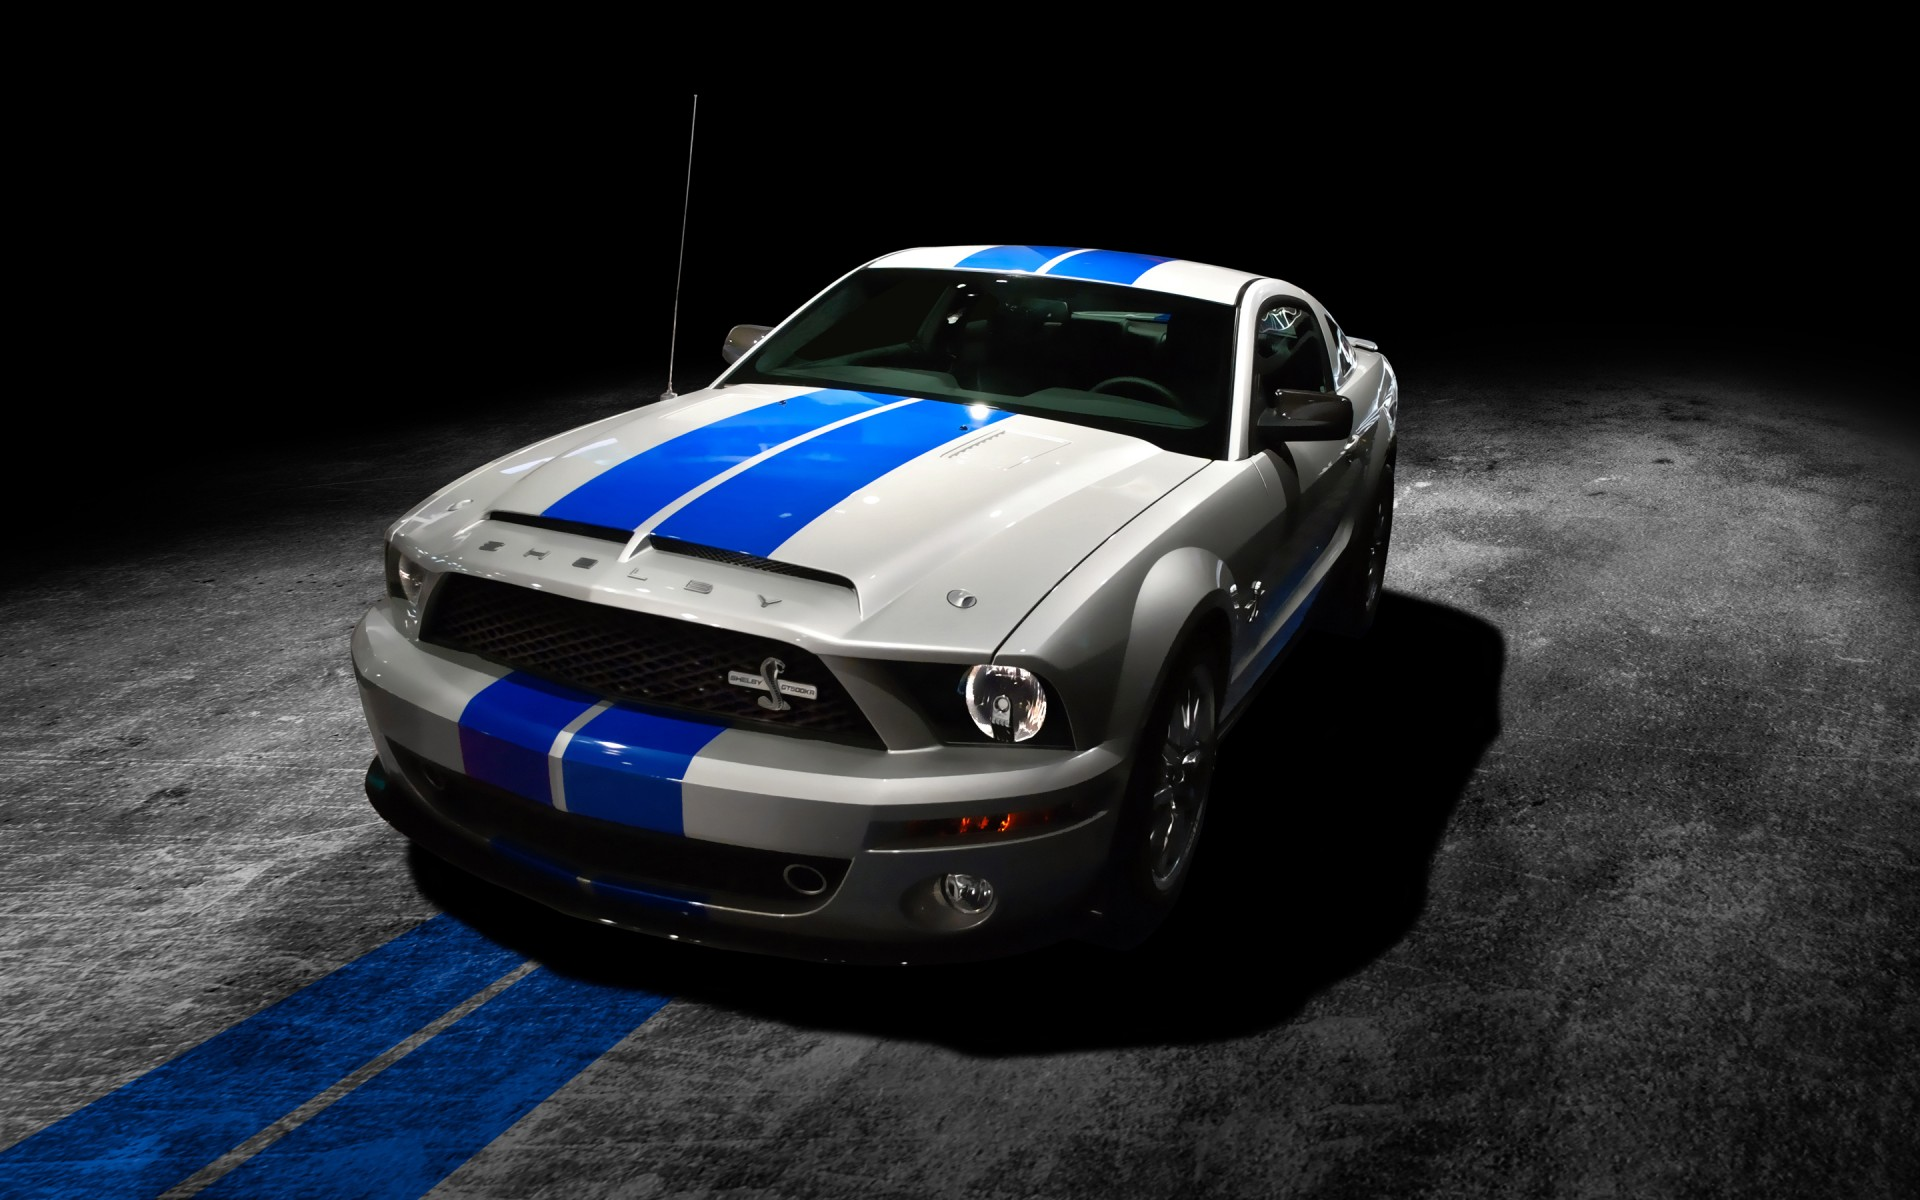 New Ford Mustang GT 2013 HD Wallpaper of Car   hdwallpaper2013com 1920x1200